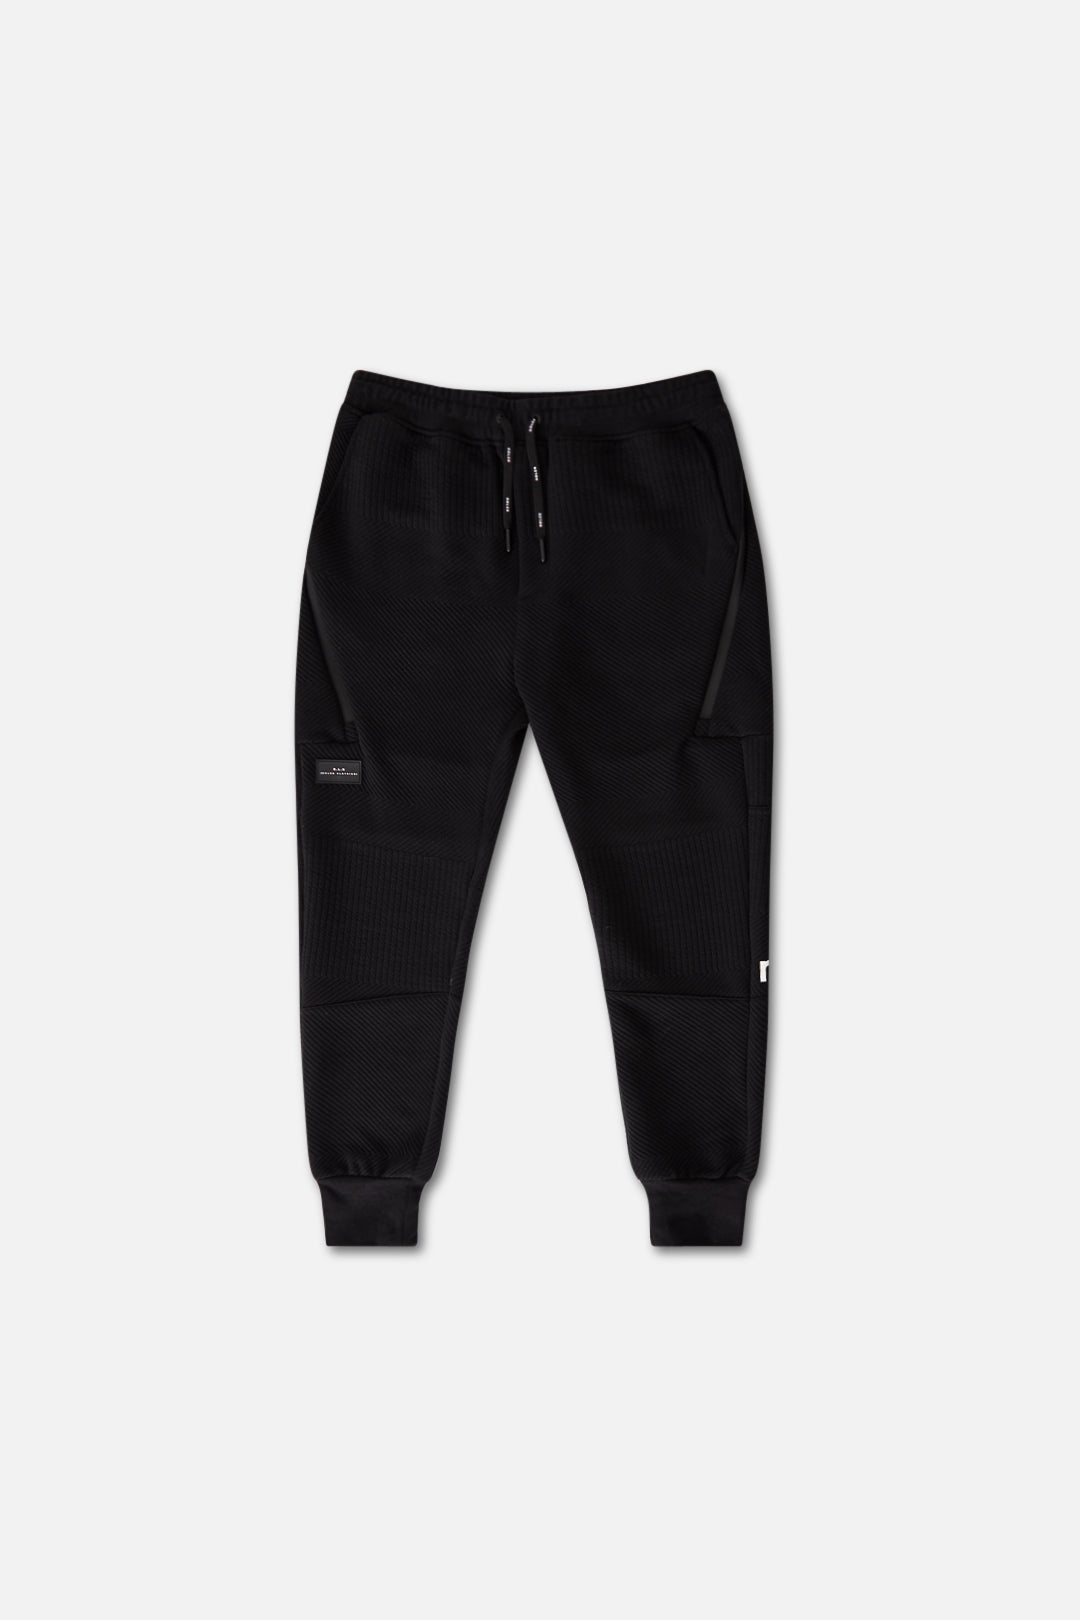 The Granville Trackie - Black